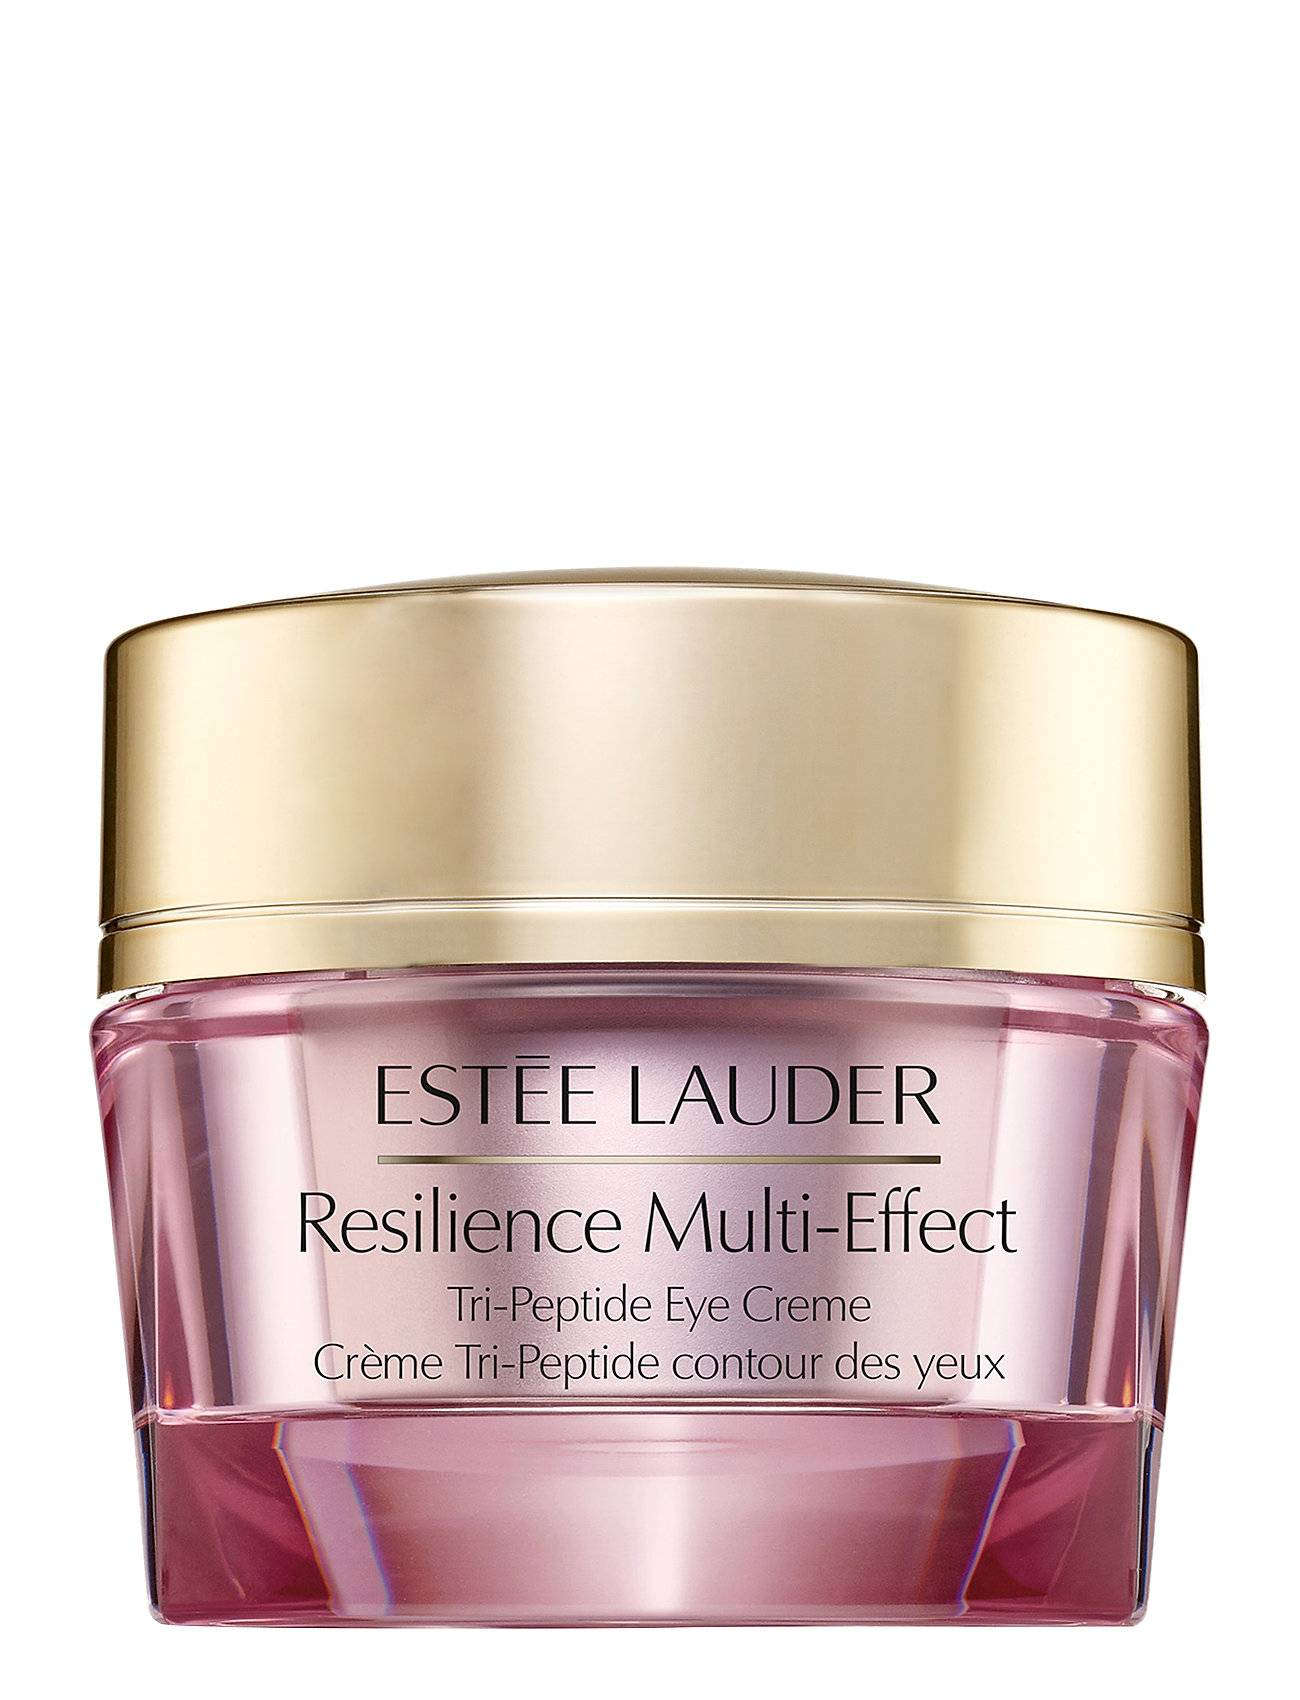 Estée Lauder Resilience Multi-Effect Tri-Peptide Face And Neck Eye Creme Beauty WOMEN Skin Care Face Eye Cream Nude Estée Lauder